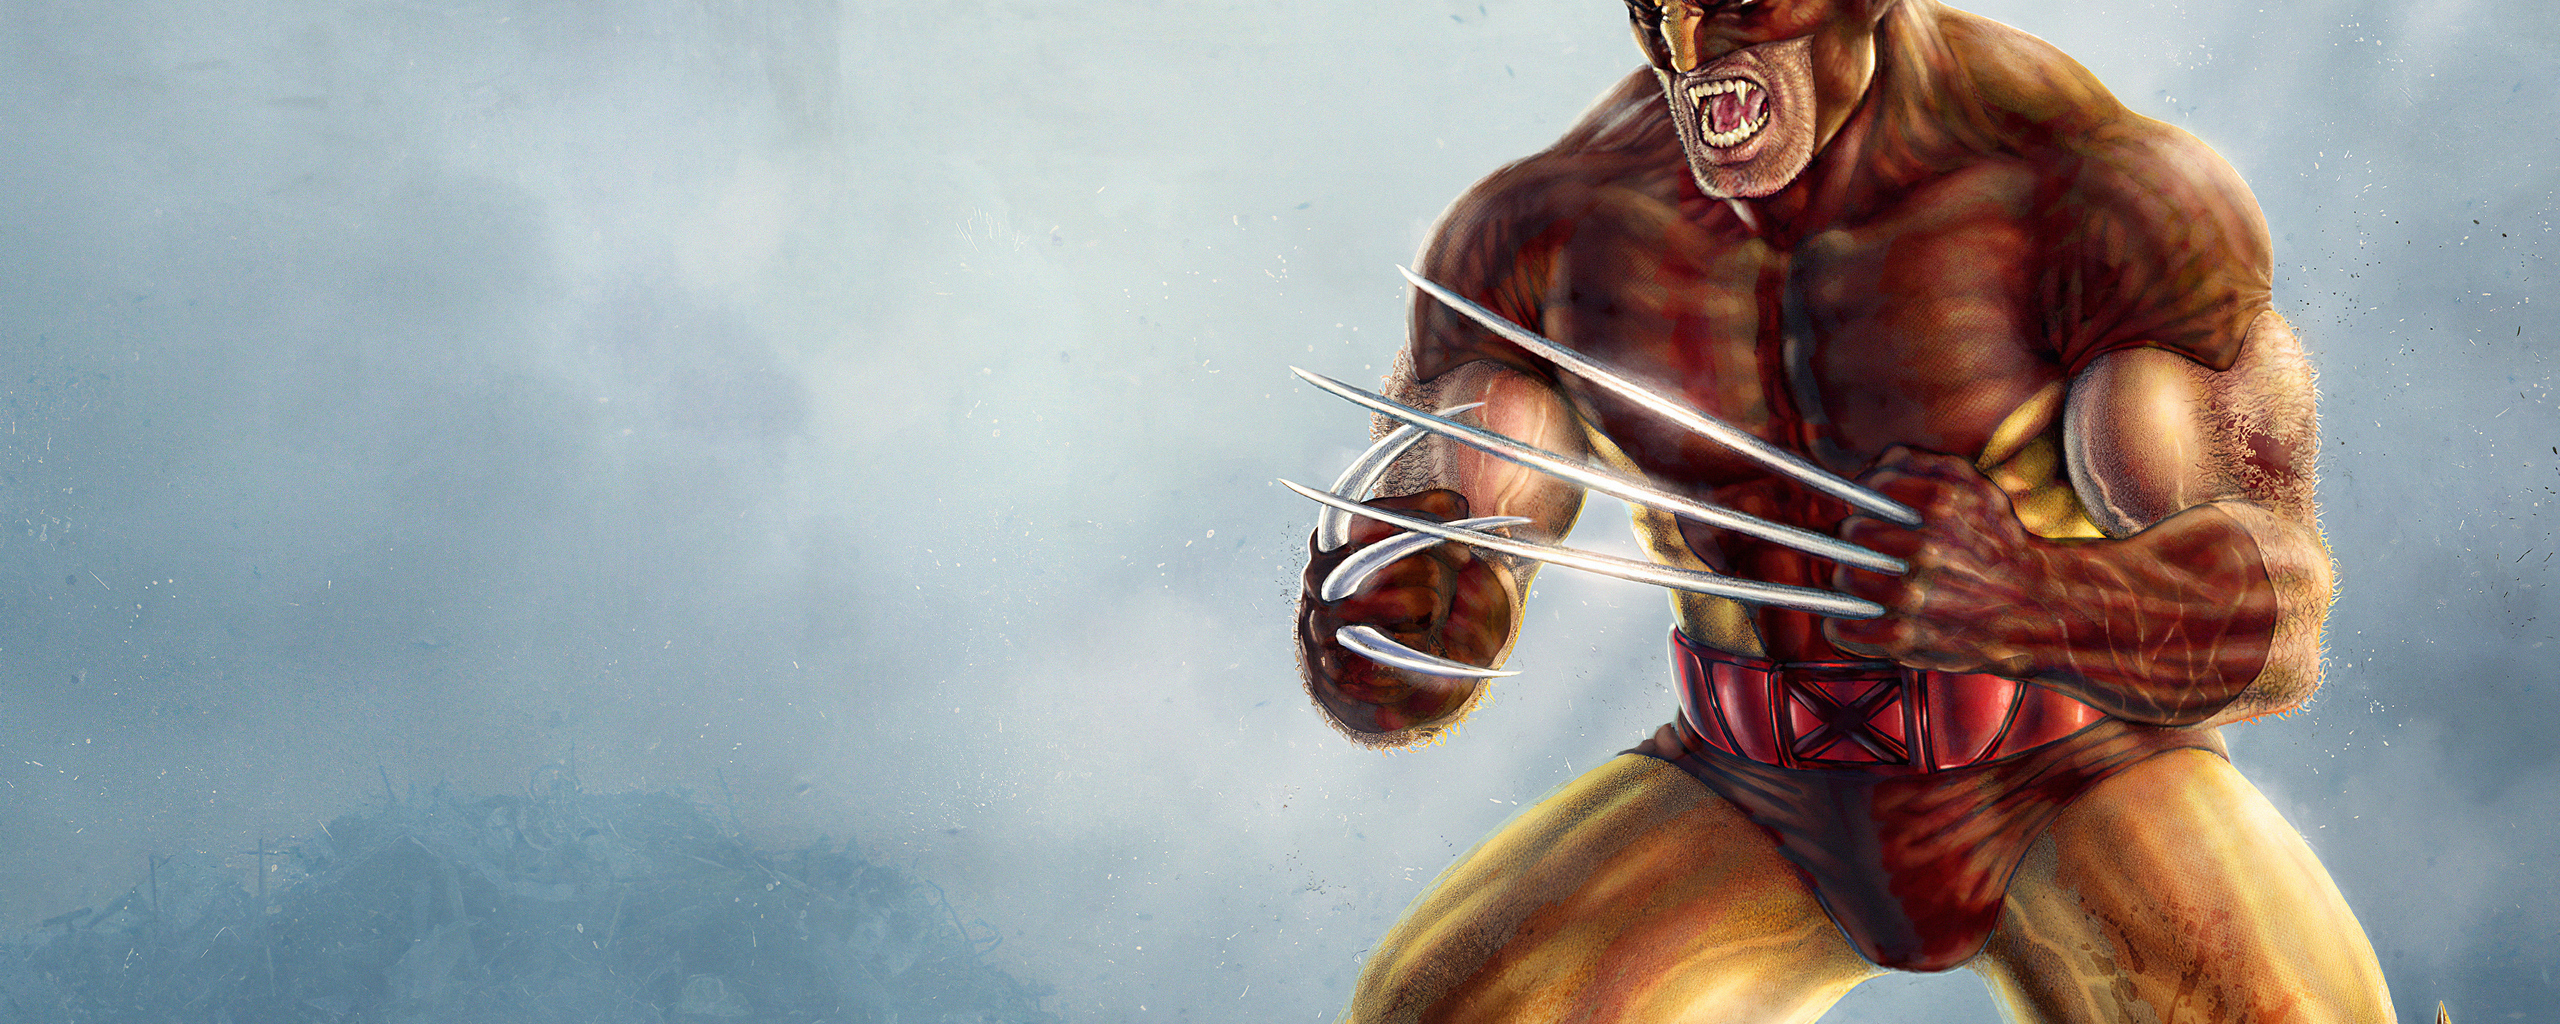 wolverine-4kartwork-new-is.jpg